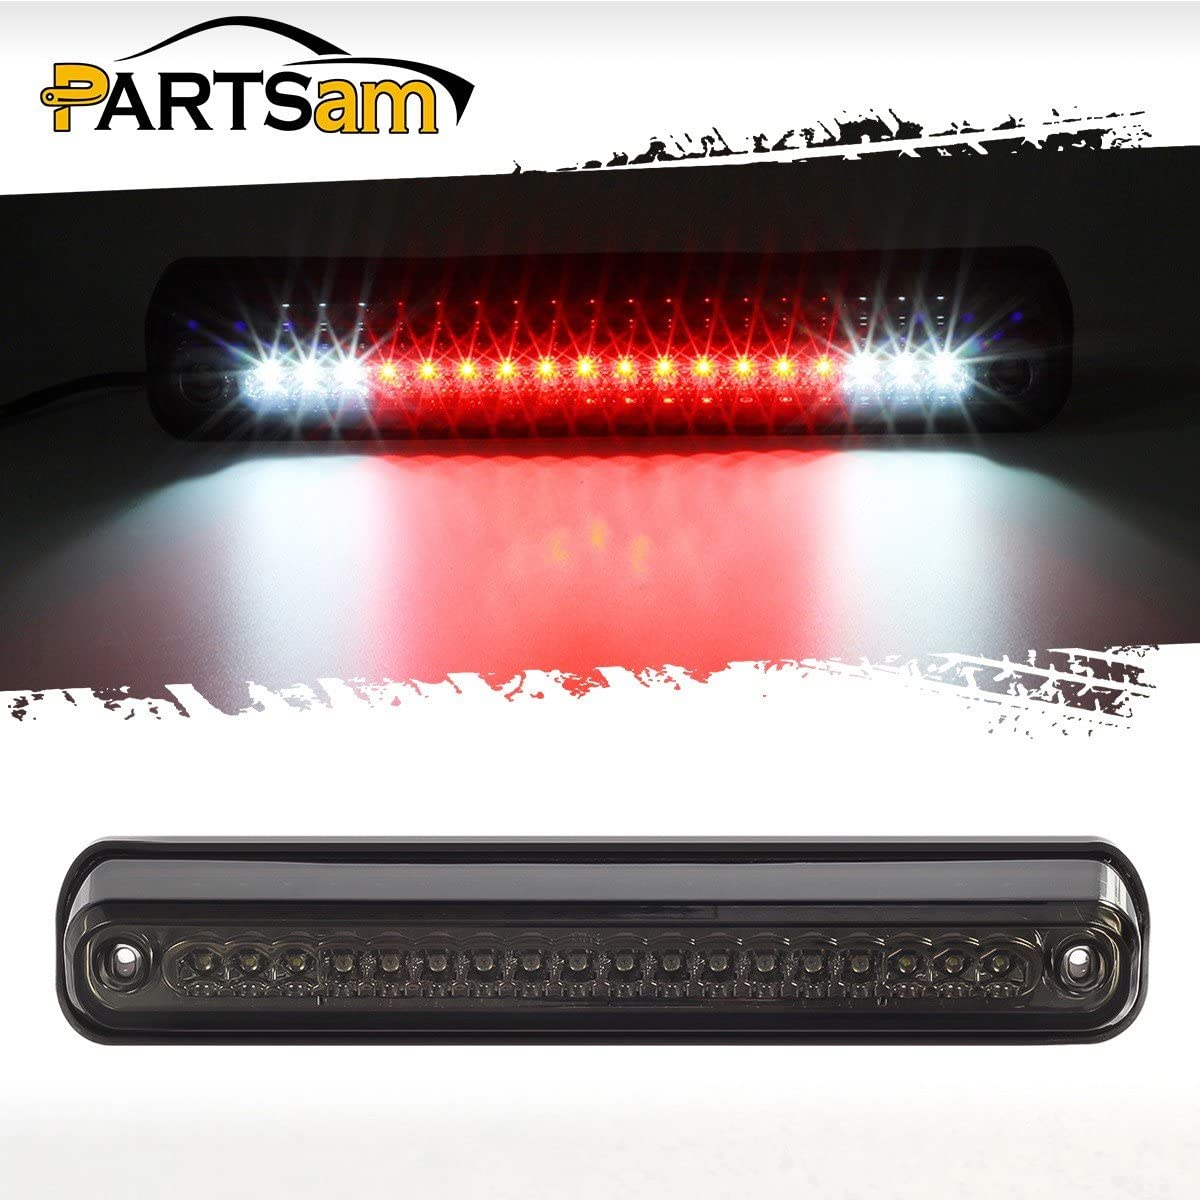 Amazon.com: Partsam Third Brake Light Replacement for Silverado/C10 C/K  1500 2500 3500 and Sierra C/K 1500 2500 3500 1994 to 1999 LED High Mount  Stop Light Rear Cab Top Roof Tail 3rdAmazon.com